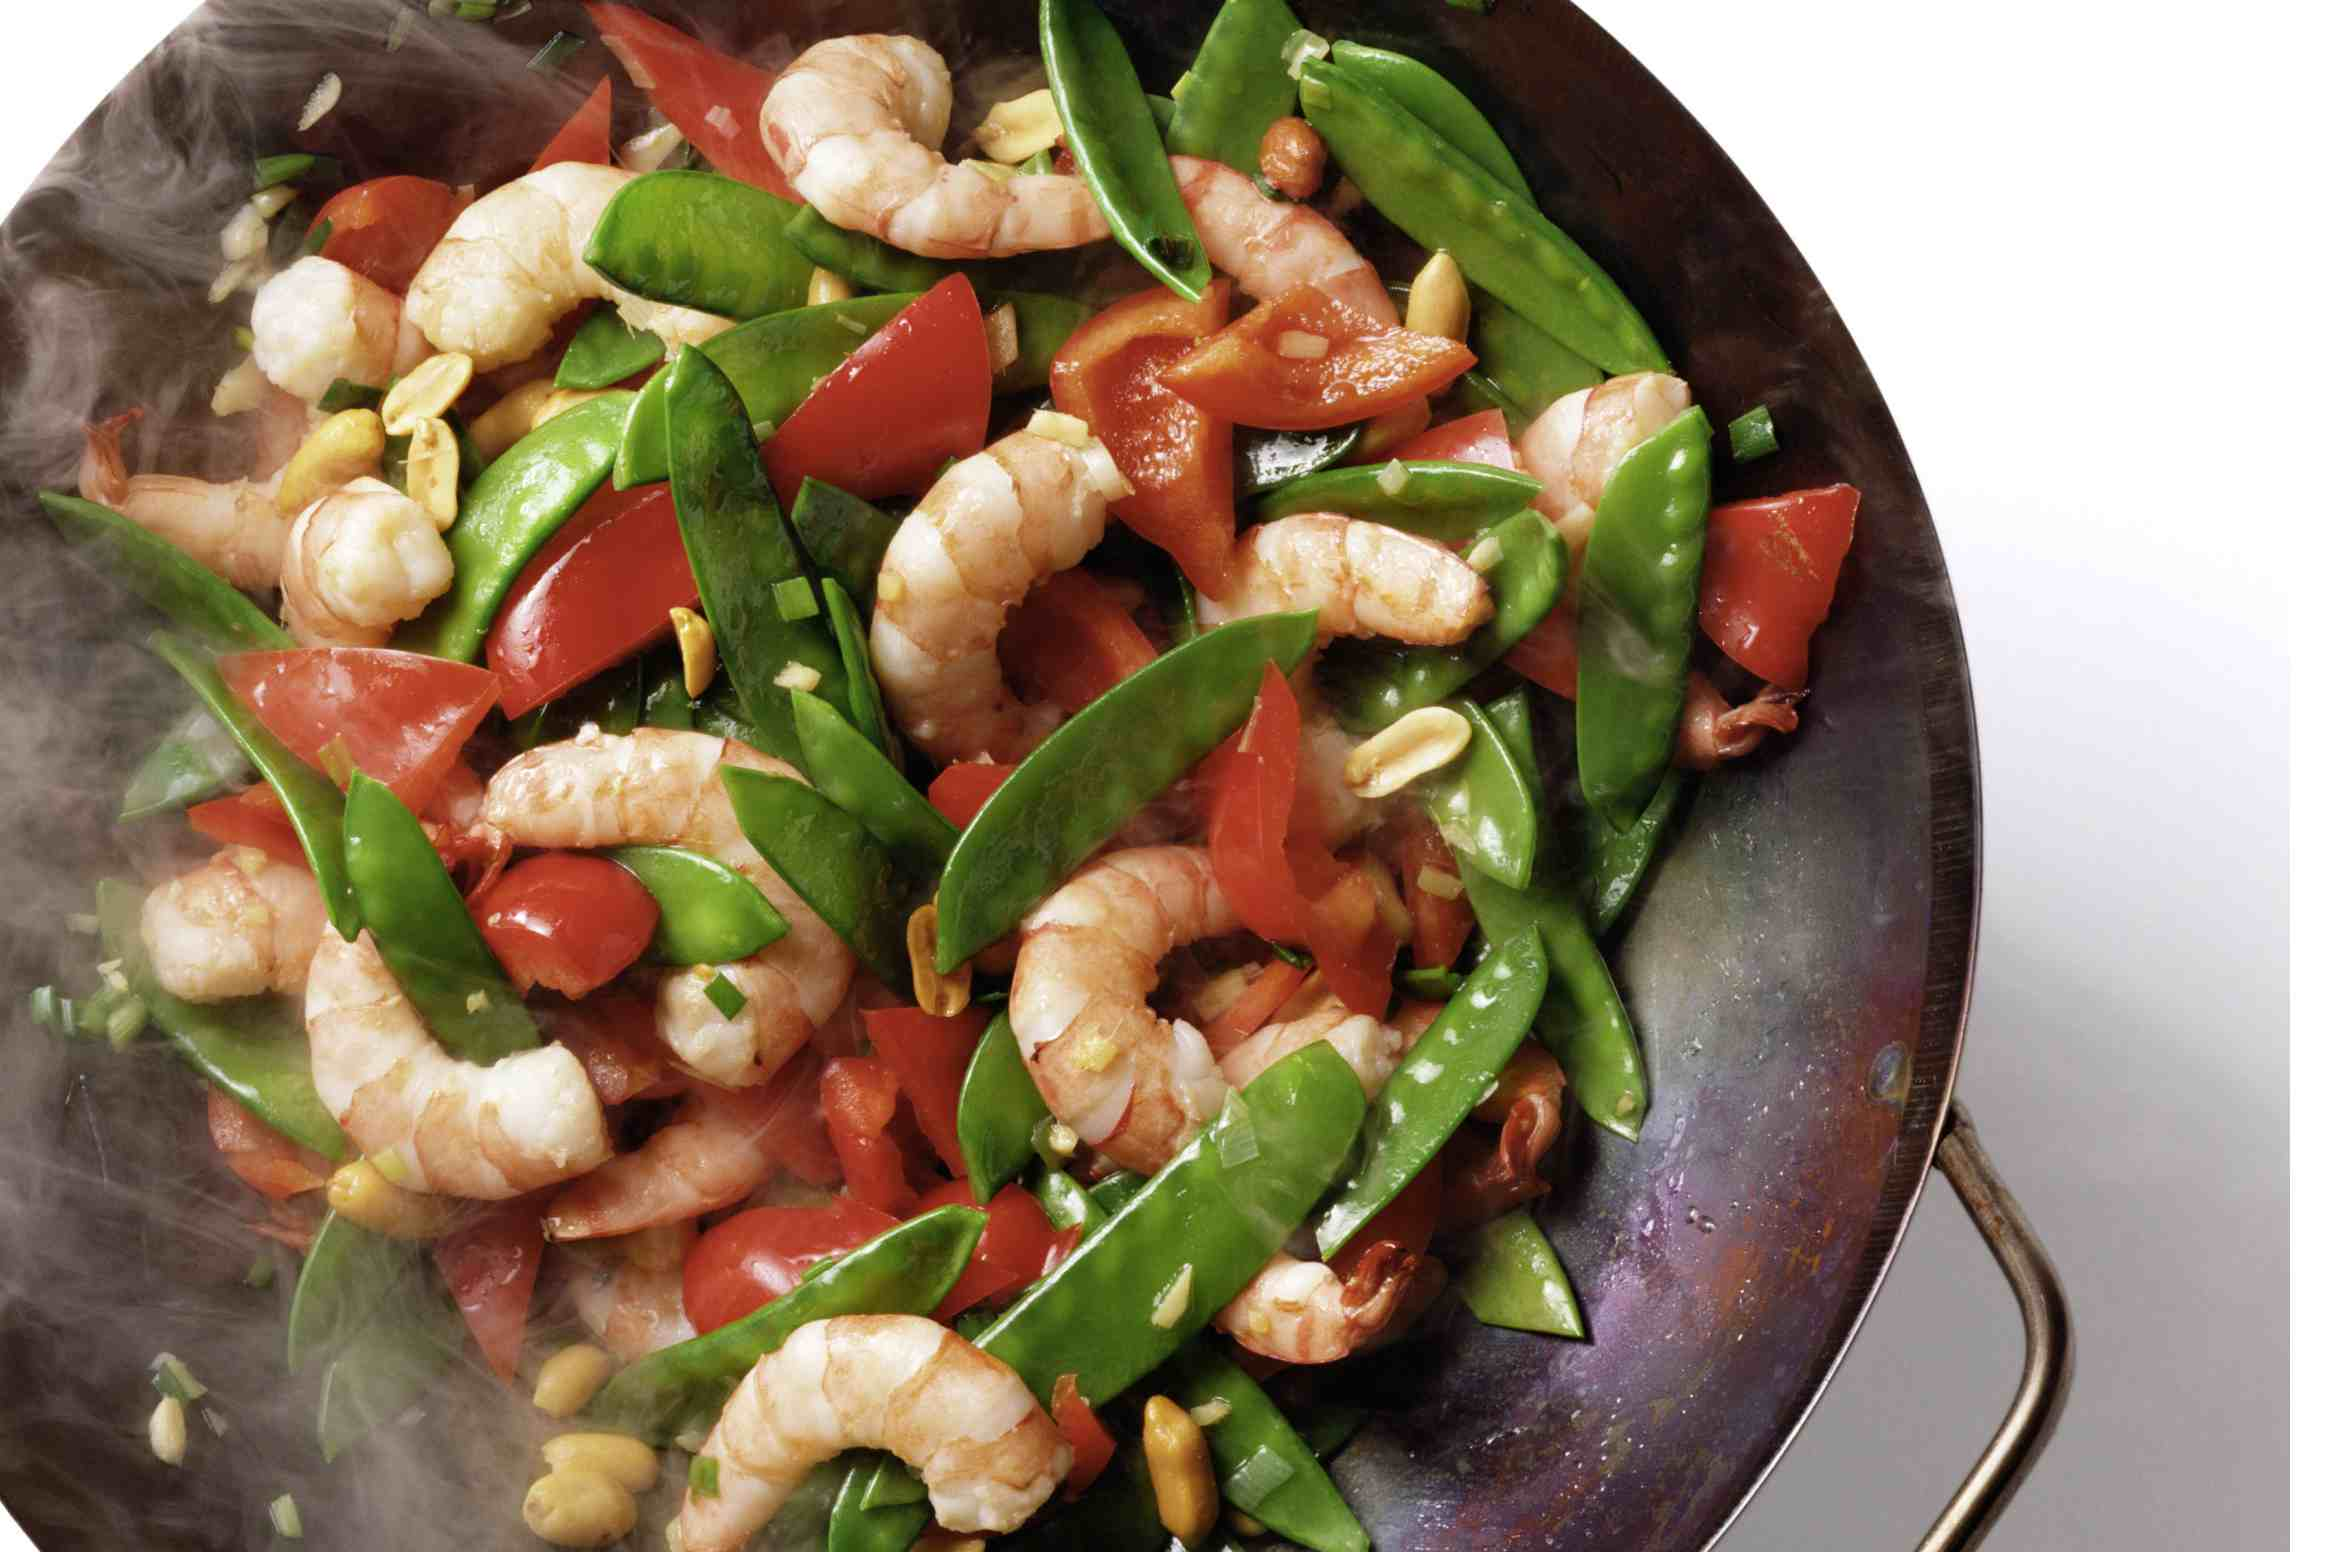 Shrimp, Snow Peas, and Red Bell Pepper